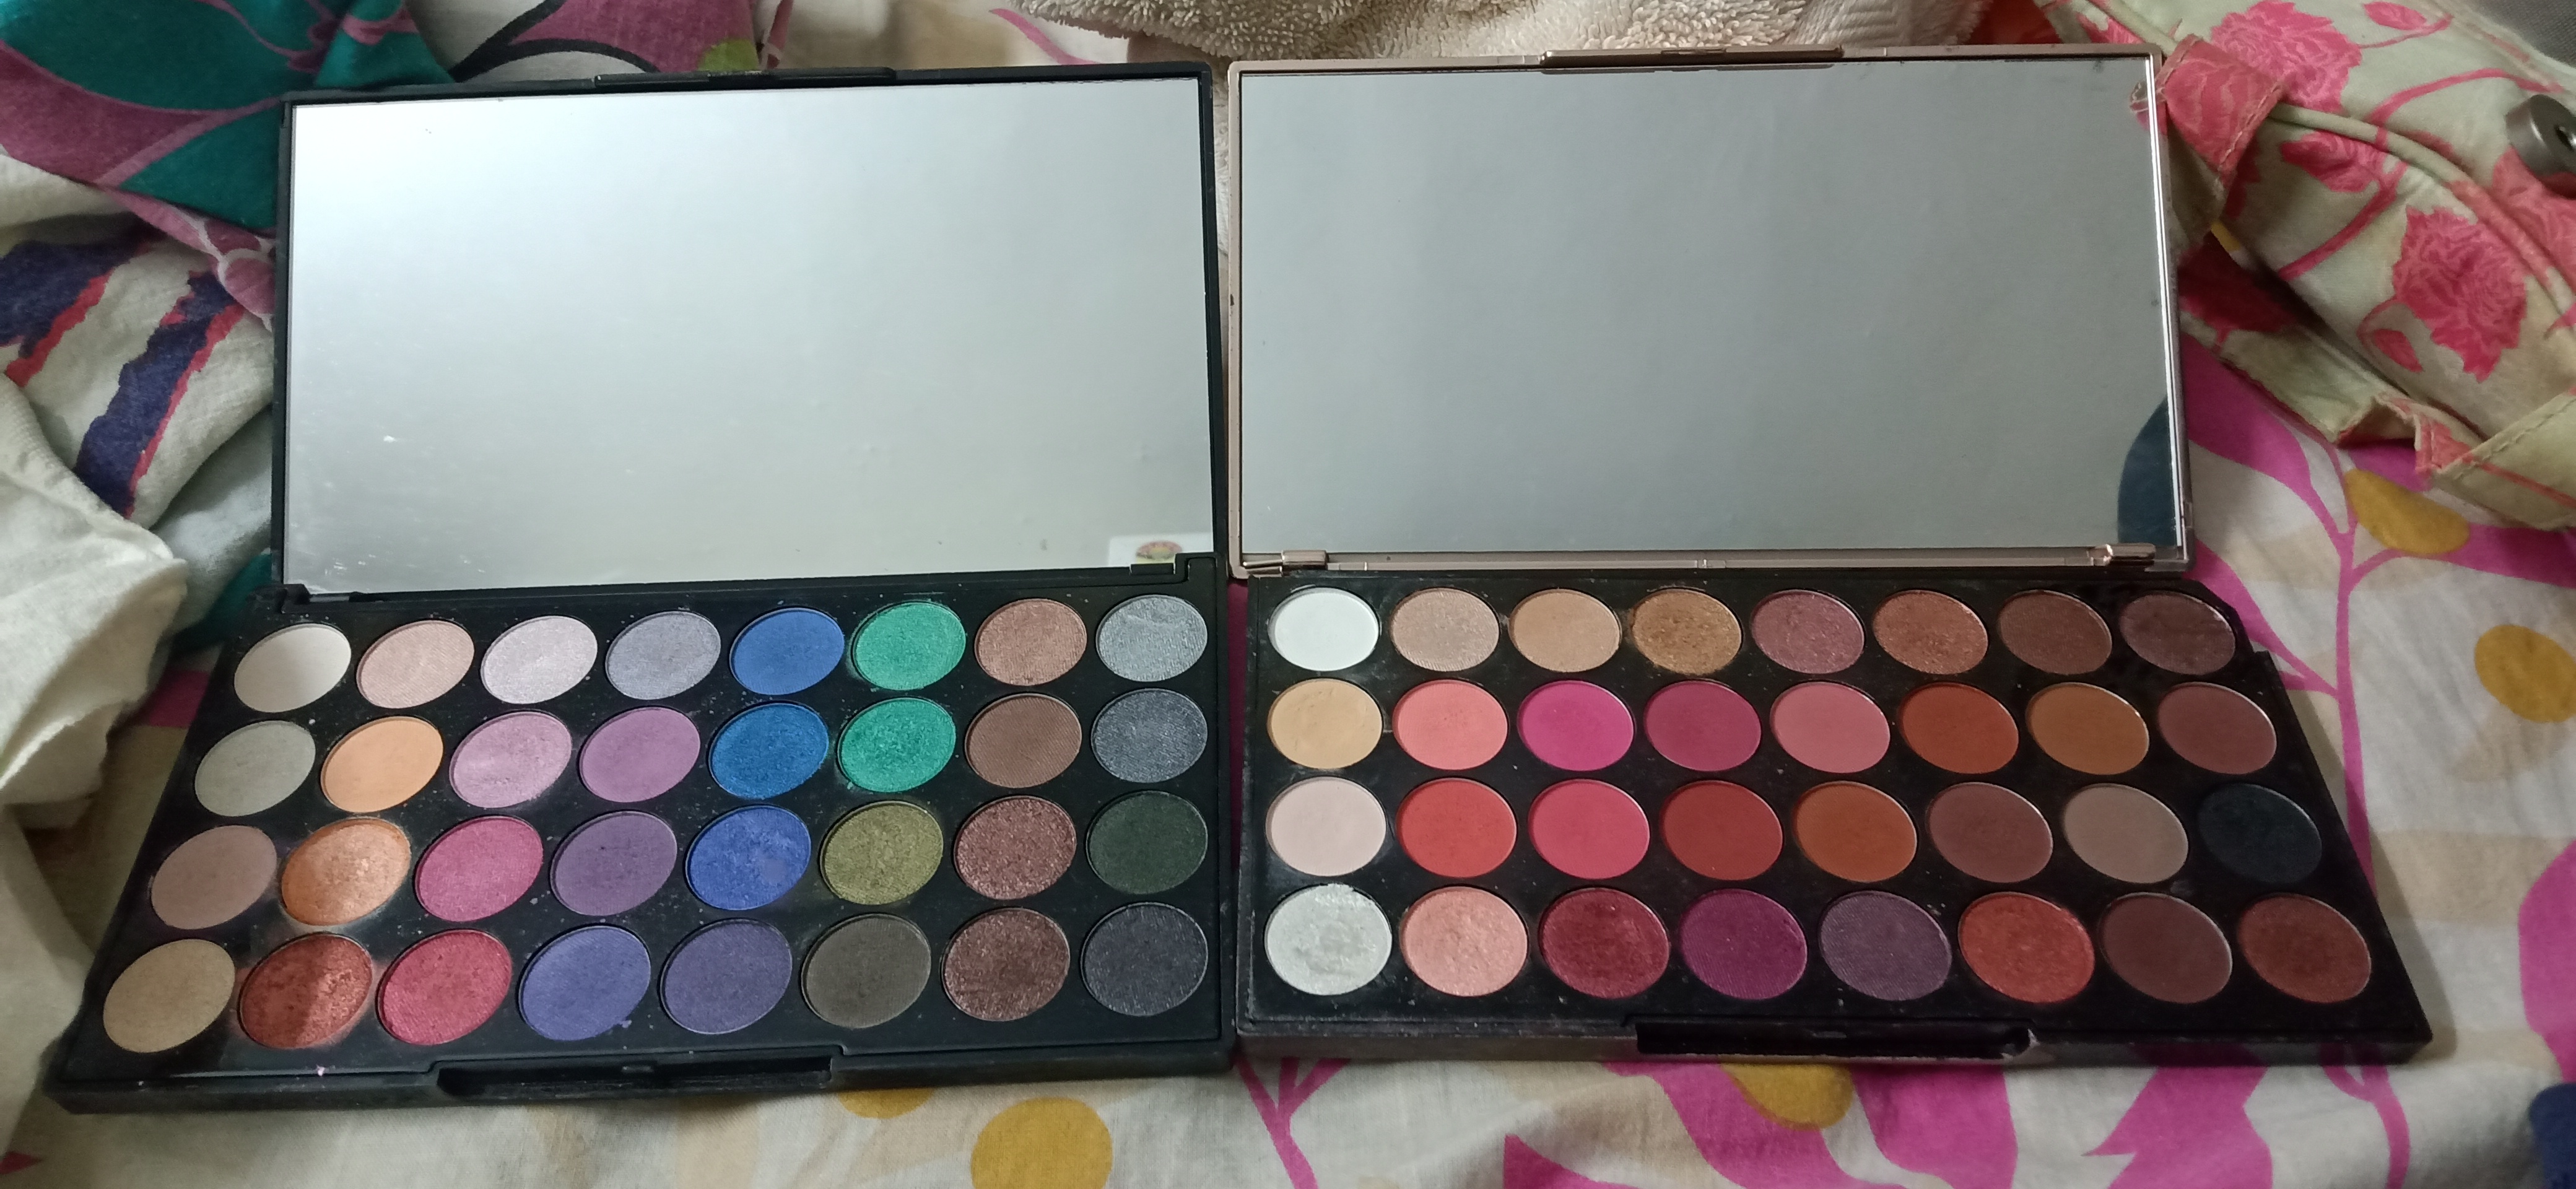 Makeup Revolution Ultra 32 Eyeshadow Palette-Affordable and colourful!-By vasundhara_juyal